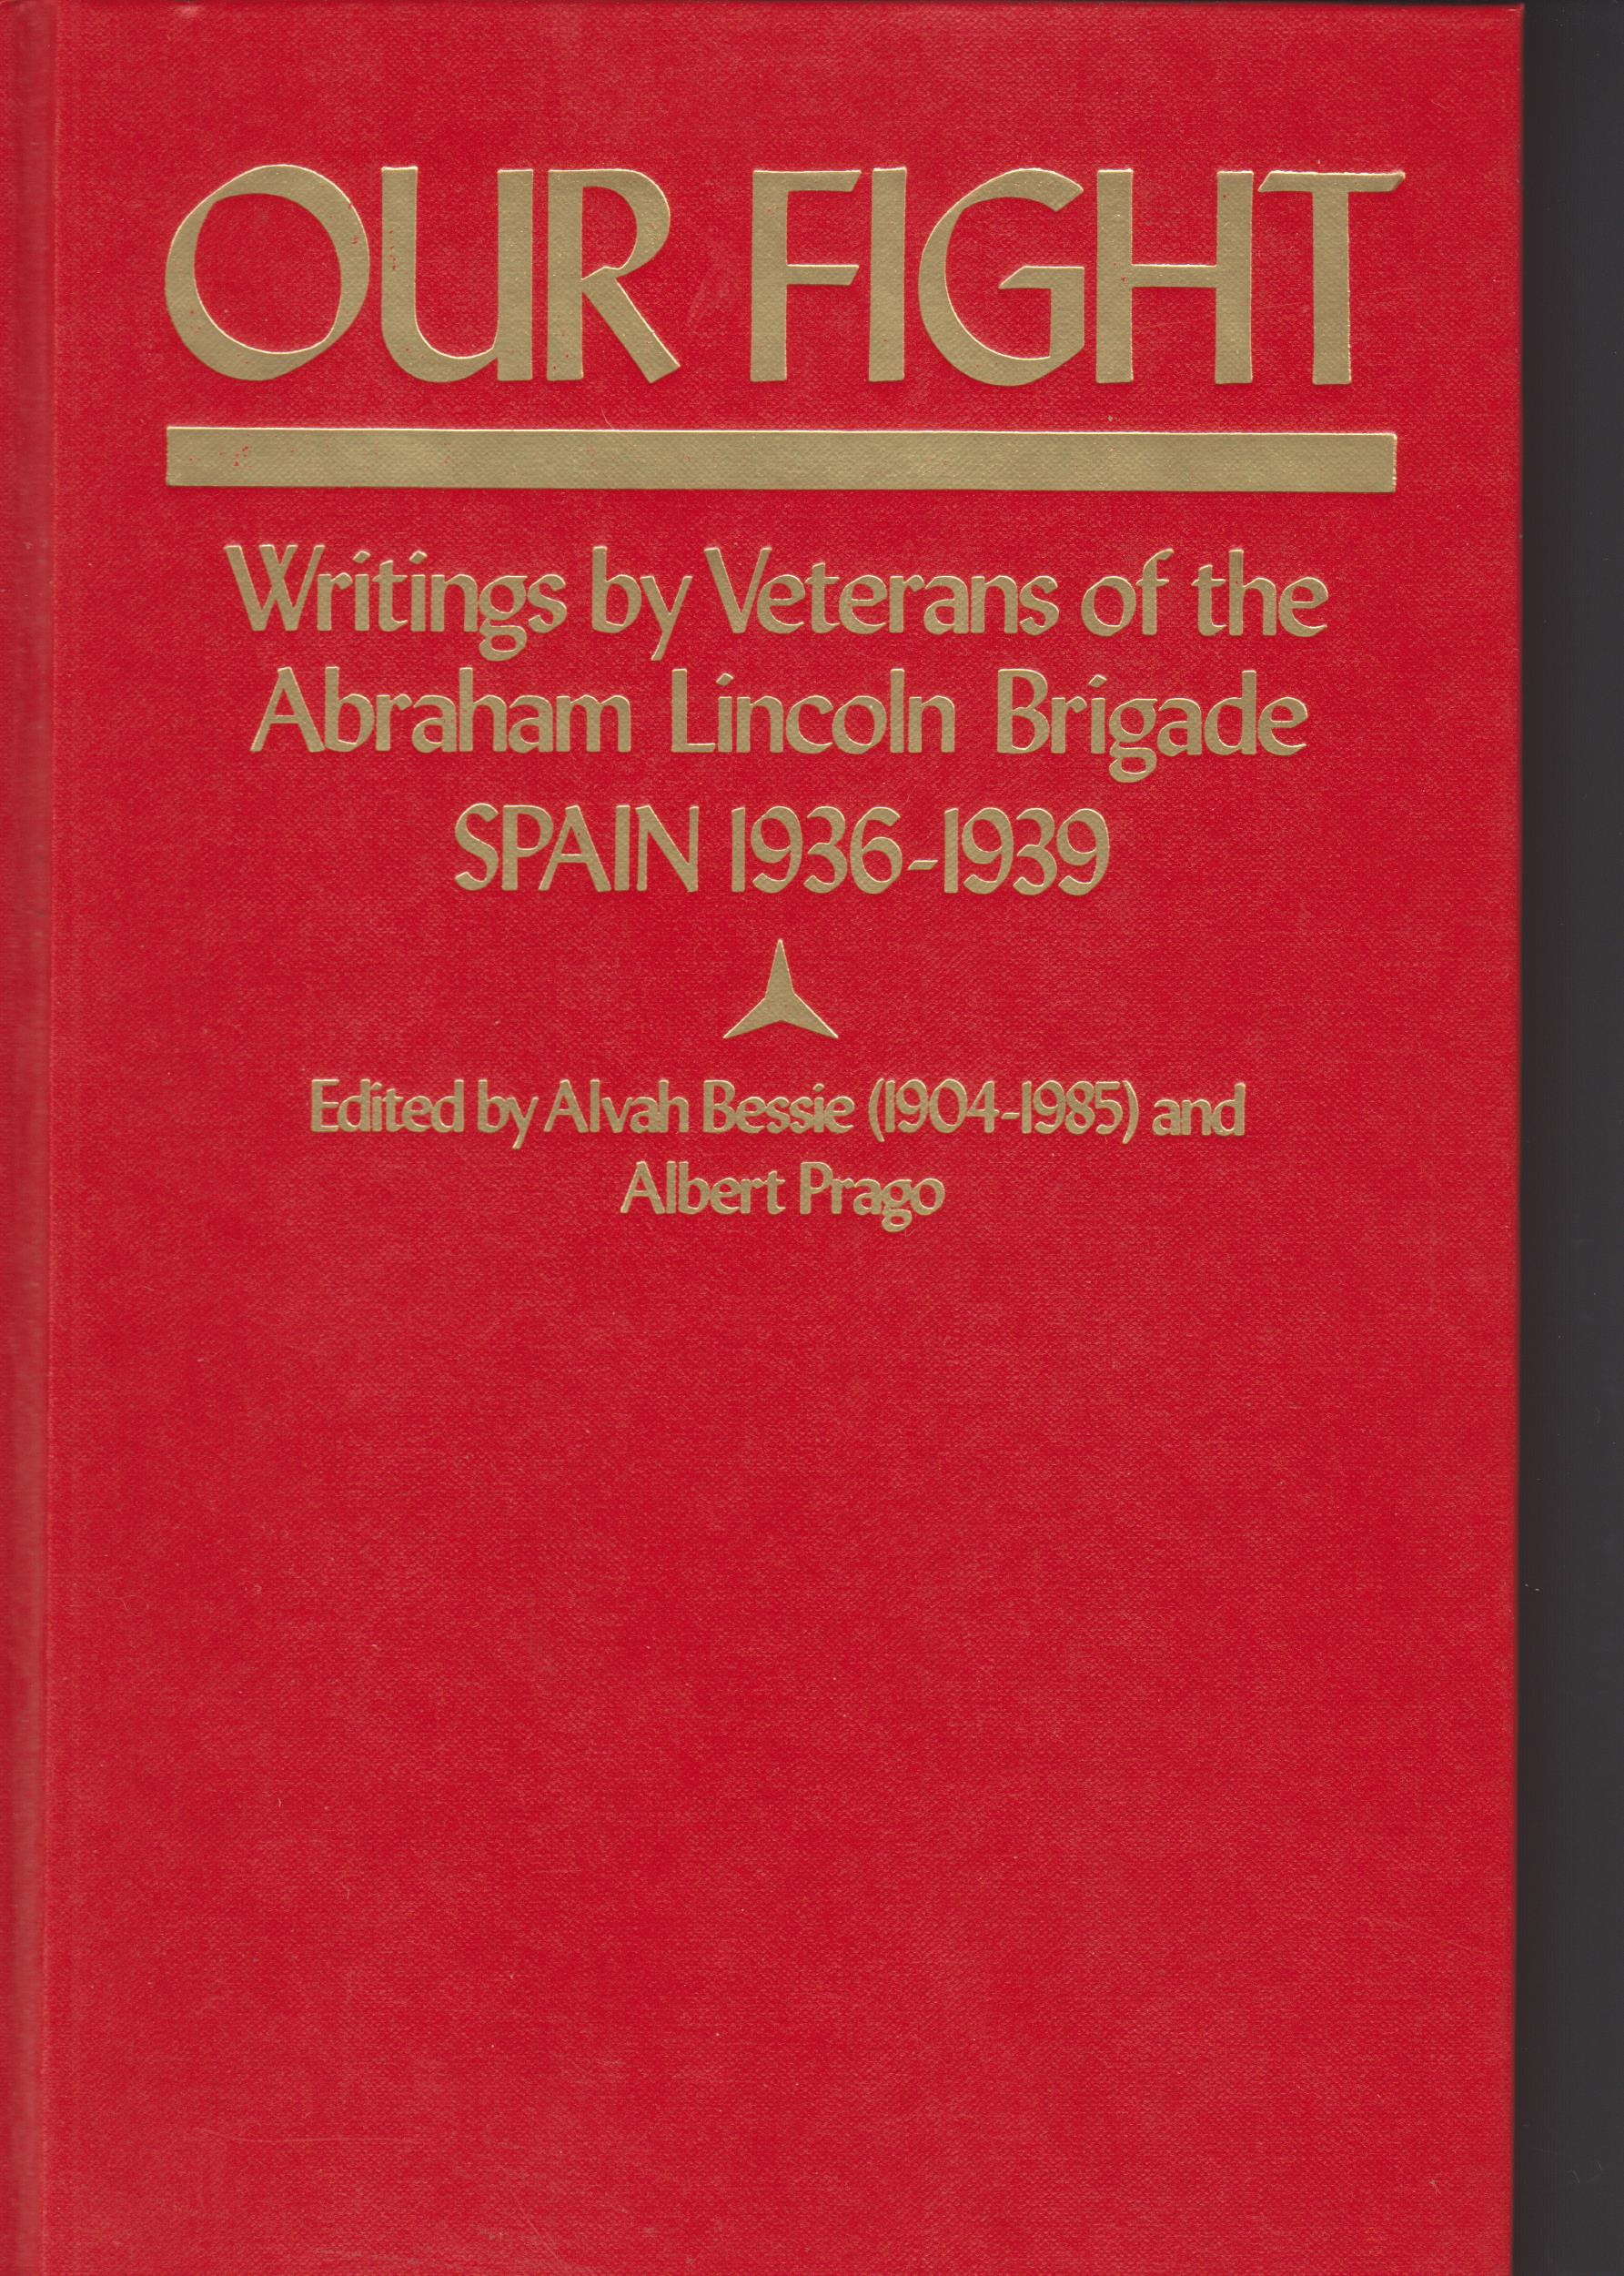 Image for Our Fight. Writings by the Veterans of the Abraham Lincoln Brigade, Spain 1936-1939